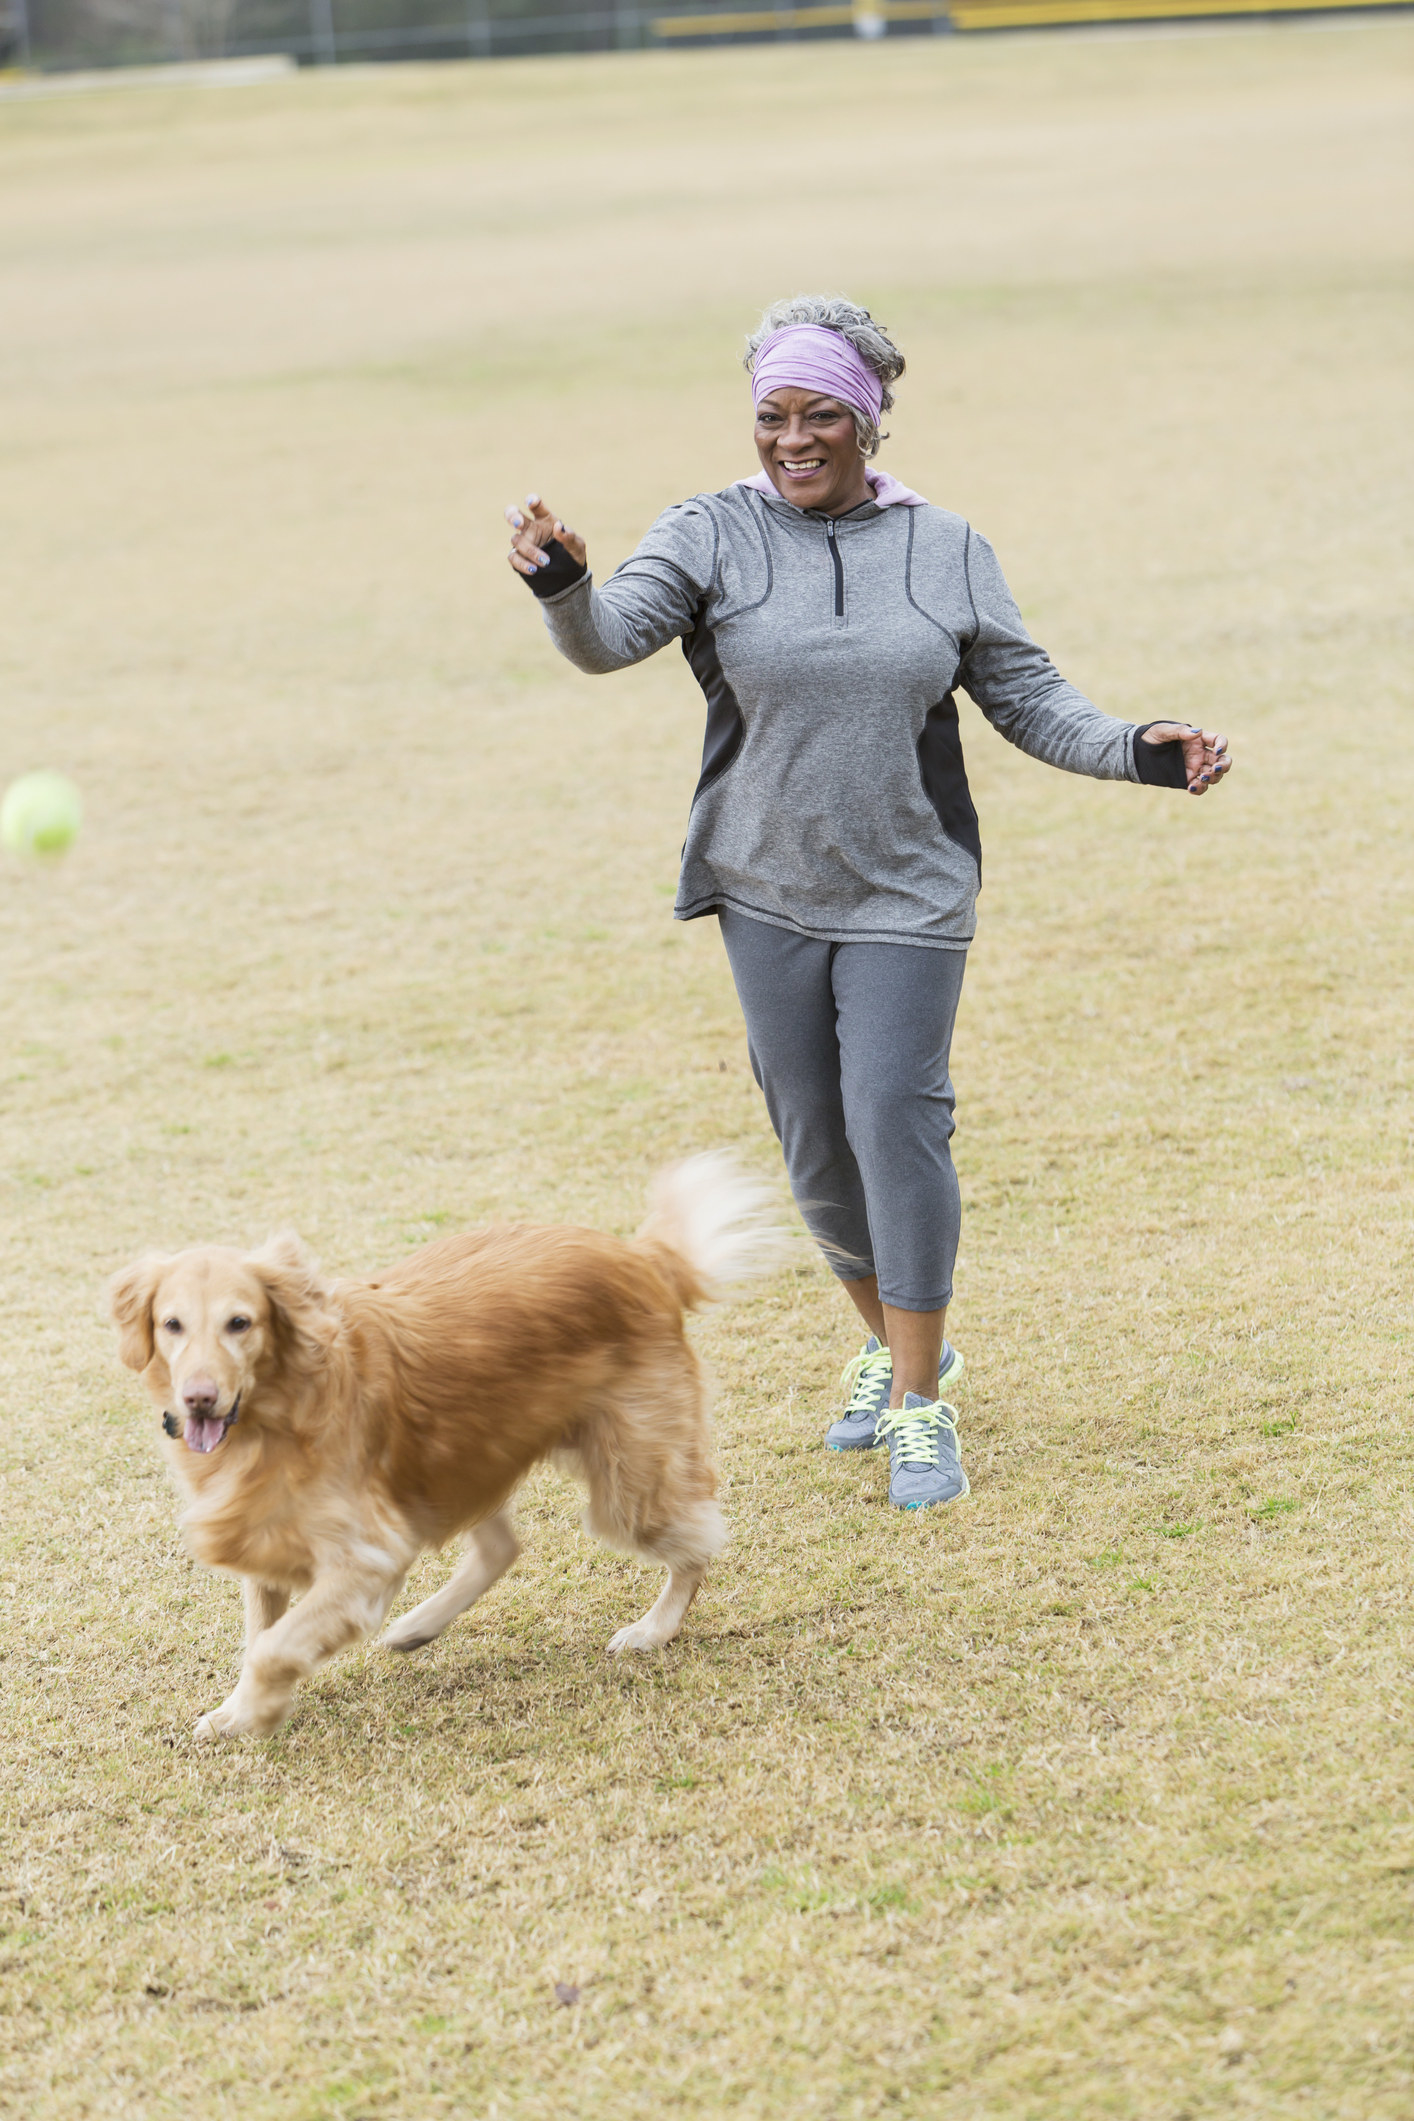 The CDC recommends that adults get at least two hours and 30 minutes of moderate aerobic exercise (like brisk walking) per week, which is more than achievable for most dog owners out there. Being responsible for walking and playing with your dog every day ensures you stay active and hit that weekly goal. As it turns out, that level of activity continues into your 70s and 80s as well — studies show that older adults who walked dogs had lower body mass index and fewer doctor visits.